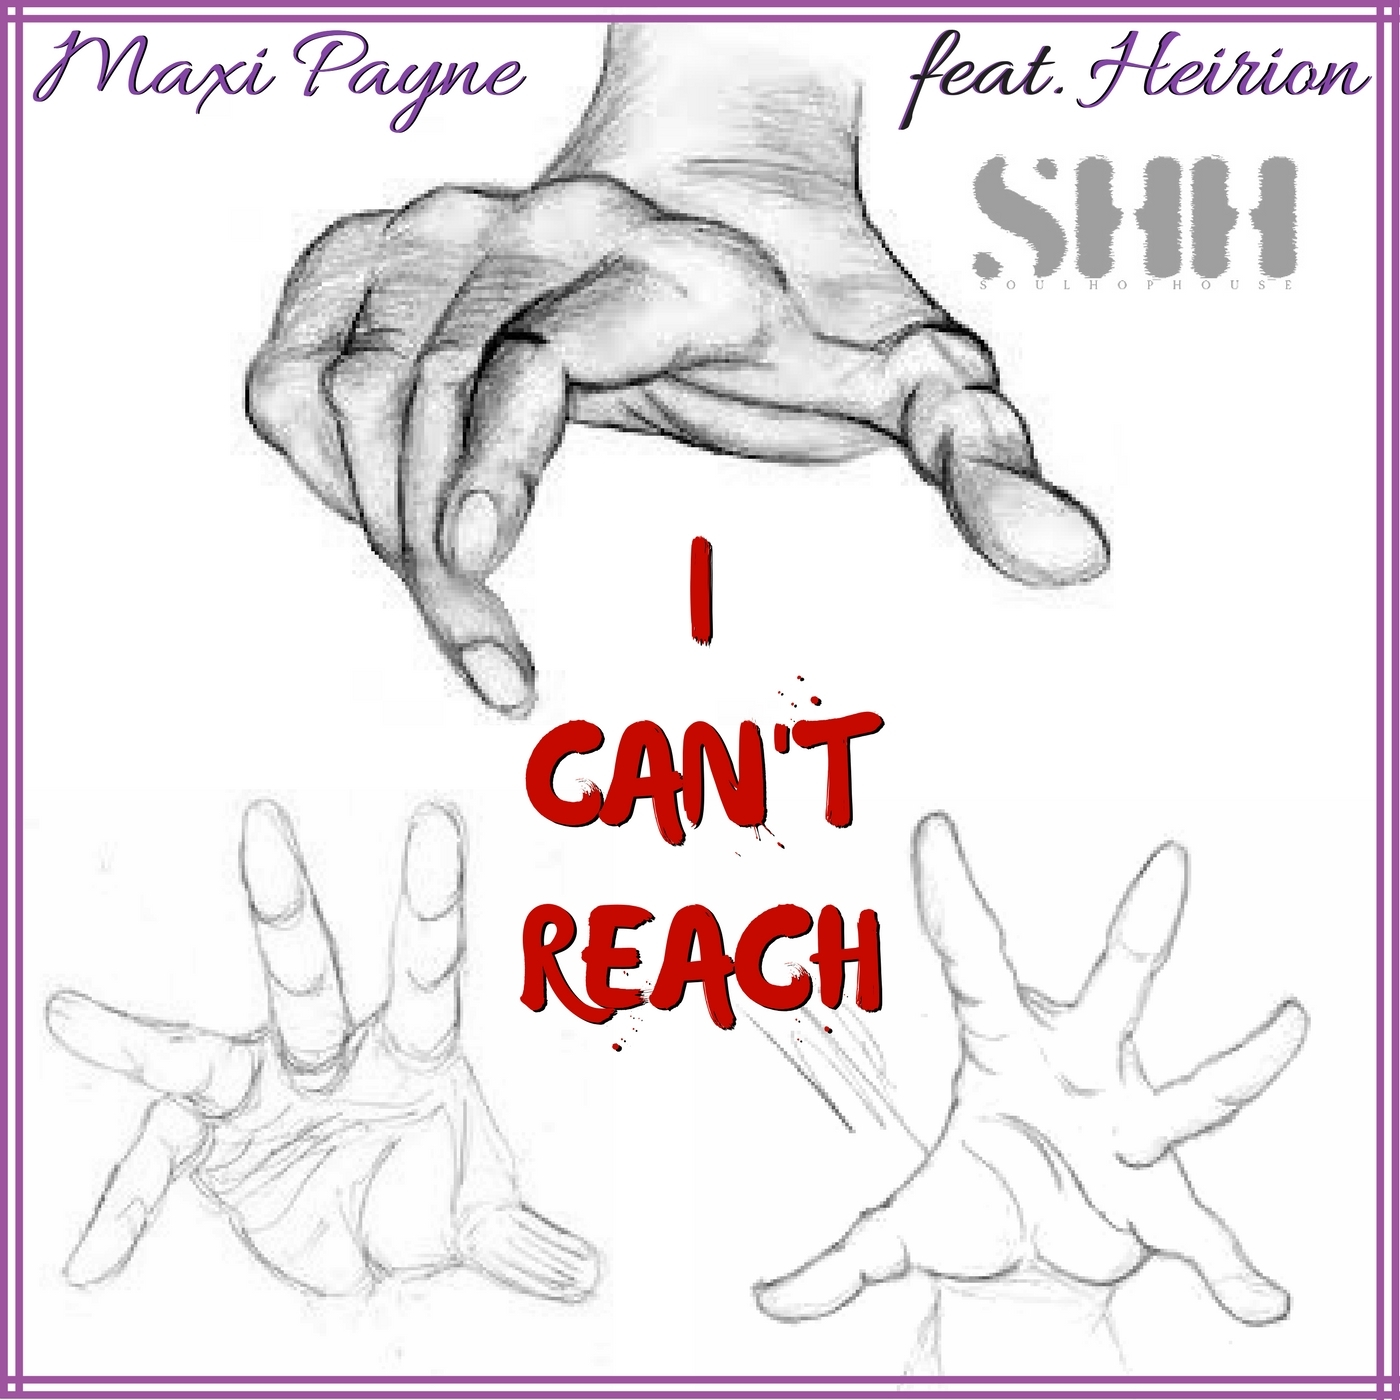 Maxi Payne - Can't Reach ft. Heirion (Prod By Yung Stitch)